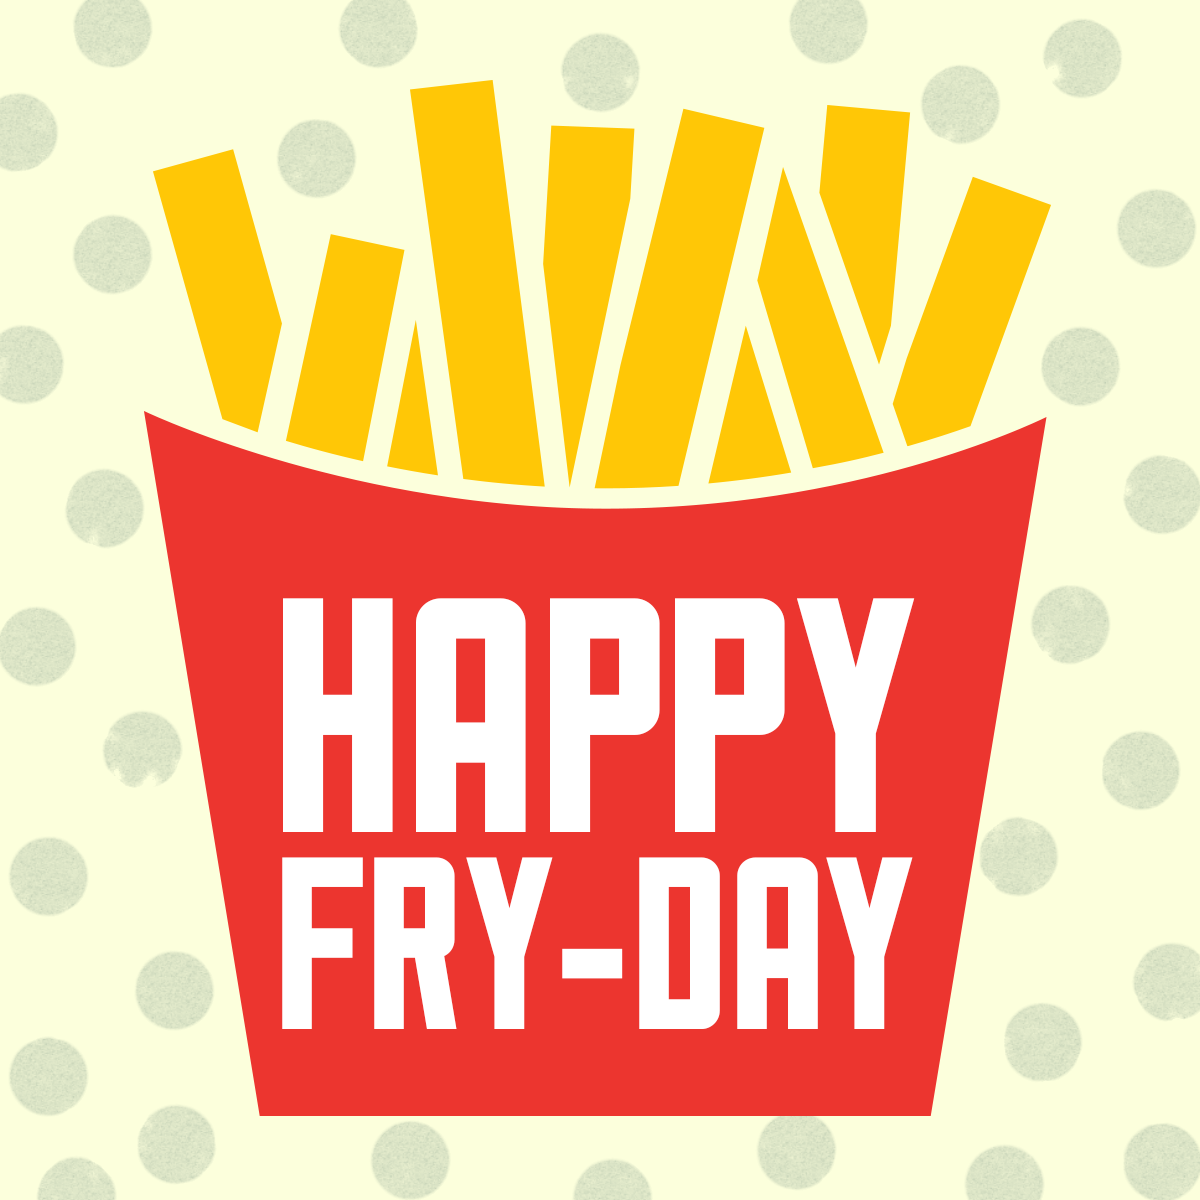 national french fry day - photo #11